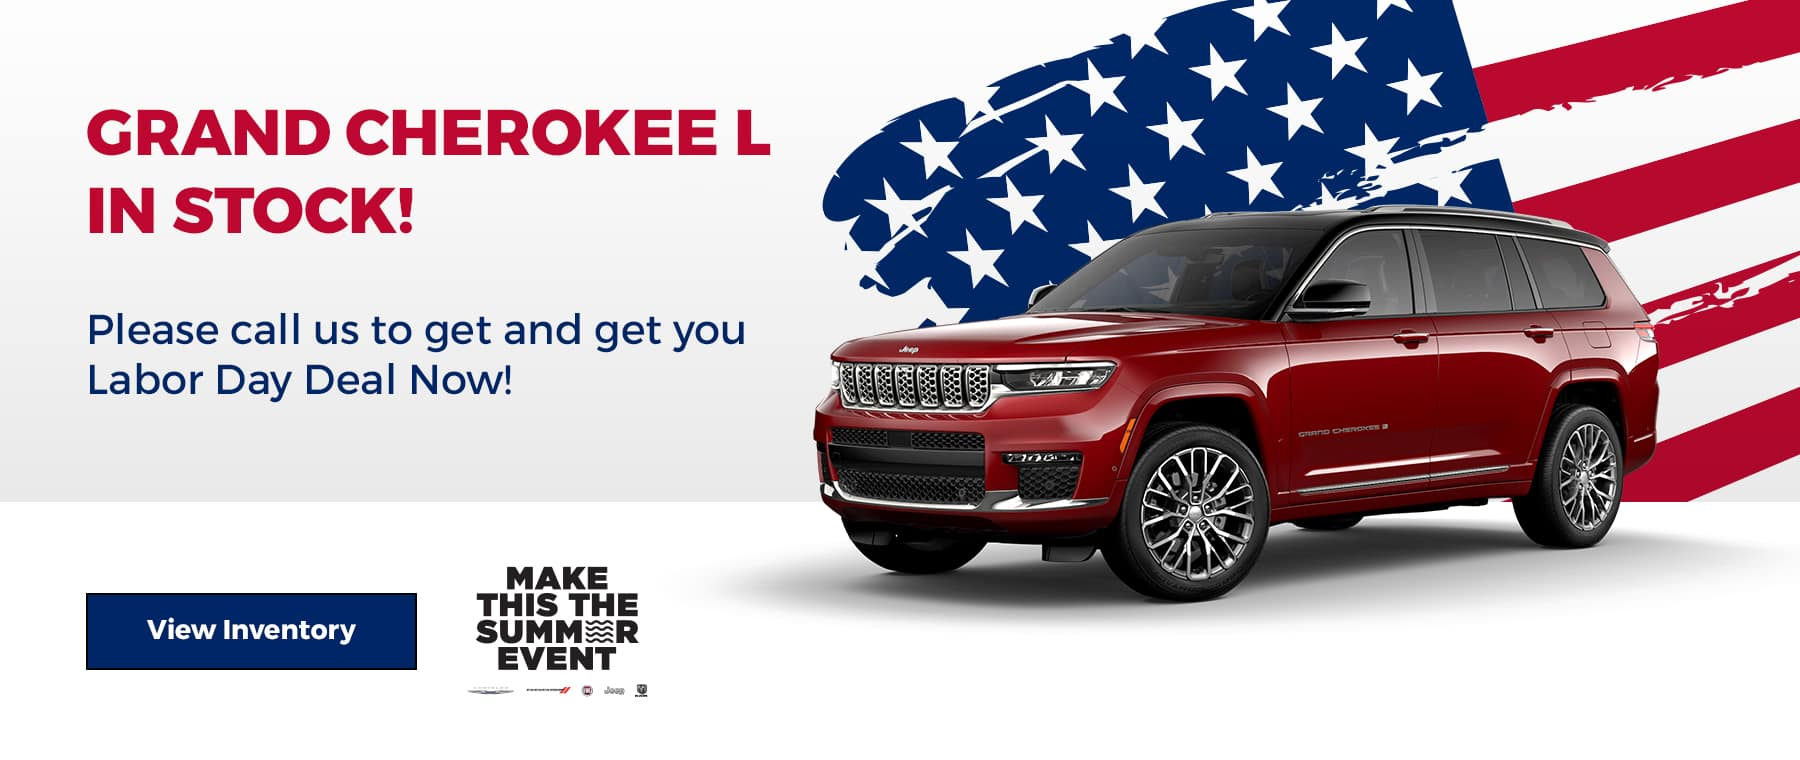 Grand Cherokee L in stock… Please call us to get and get you Labor Day Deal Now!